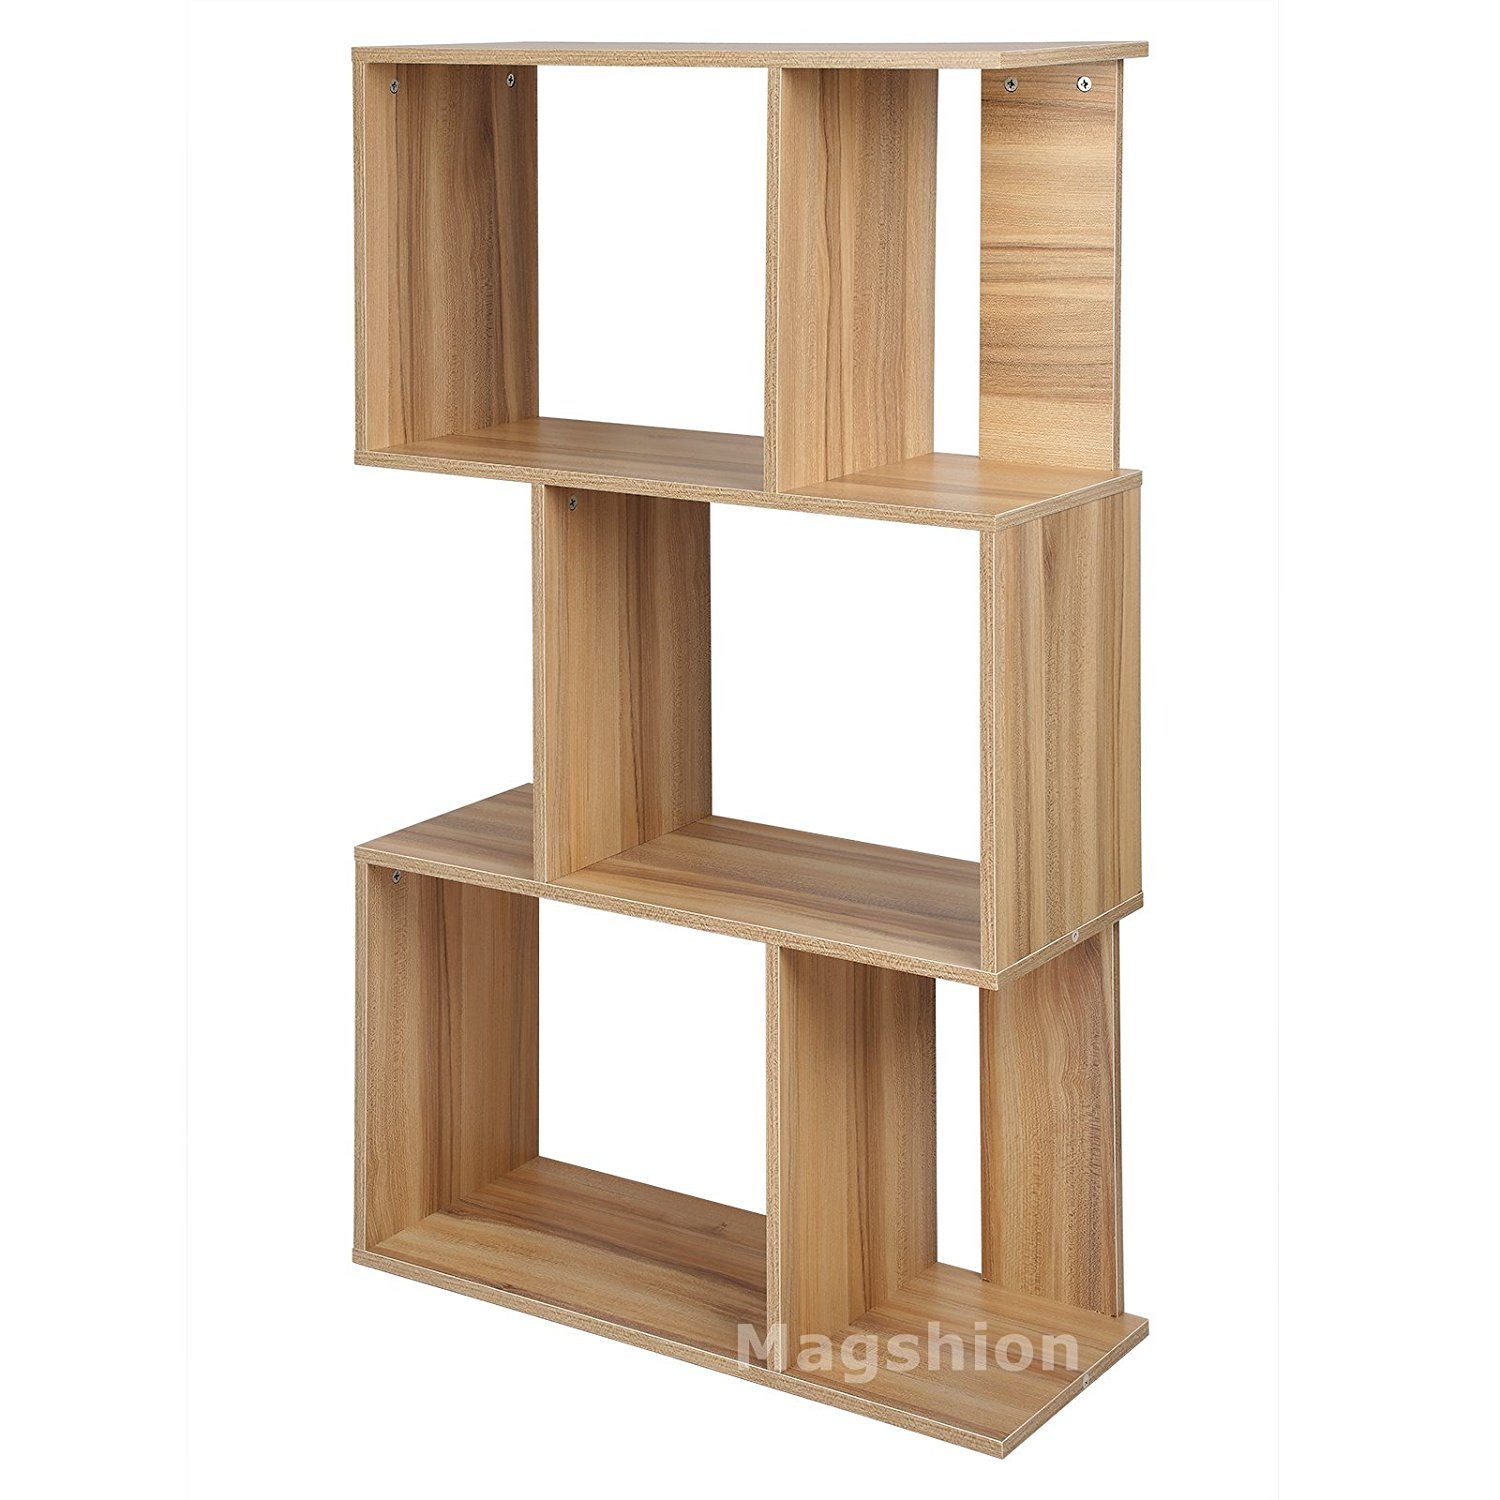 Magshion Modern Wood Bookcase Storage Shelving Stand Bookshelf Furniture Home Decor Office 3 Tier